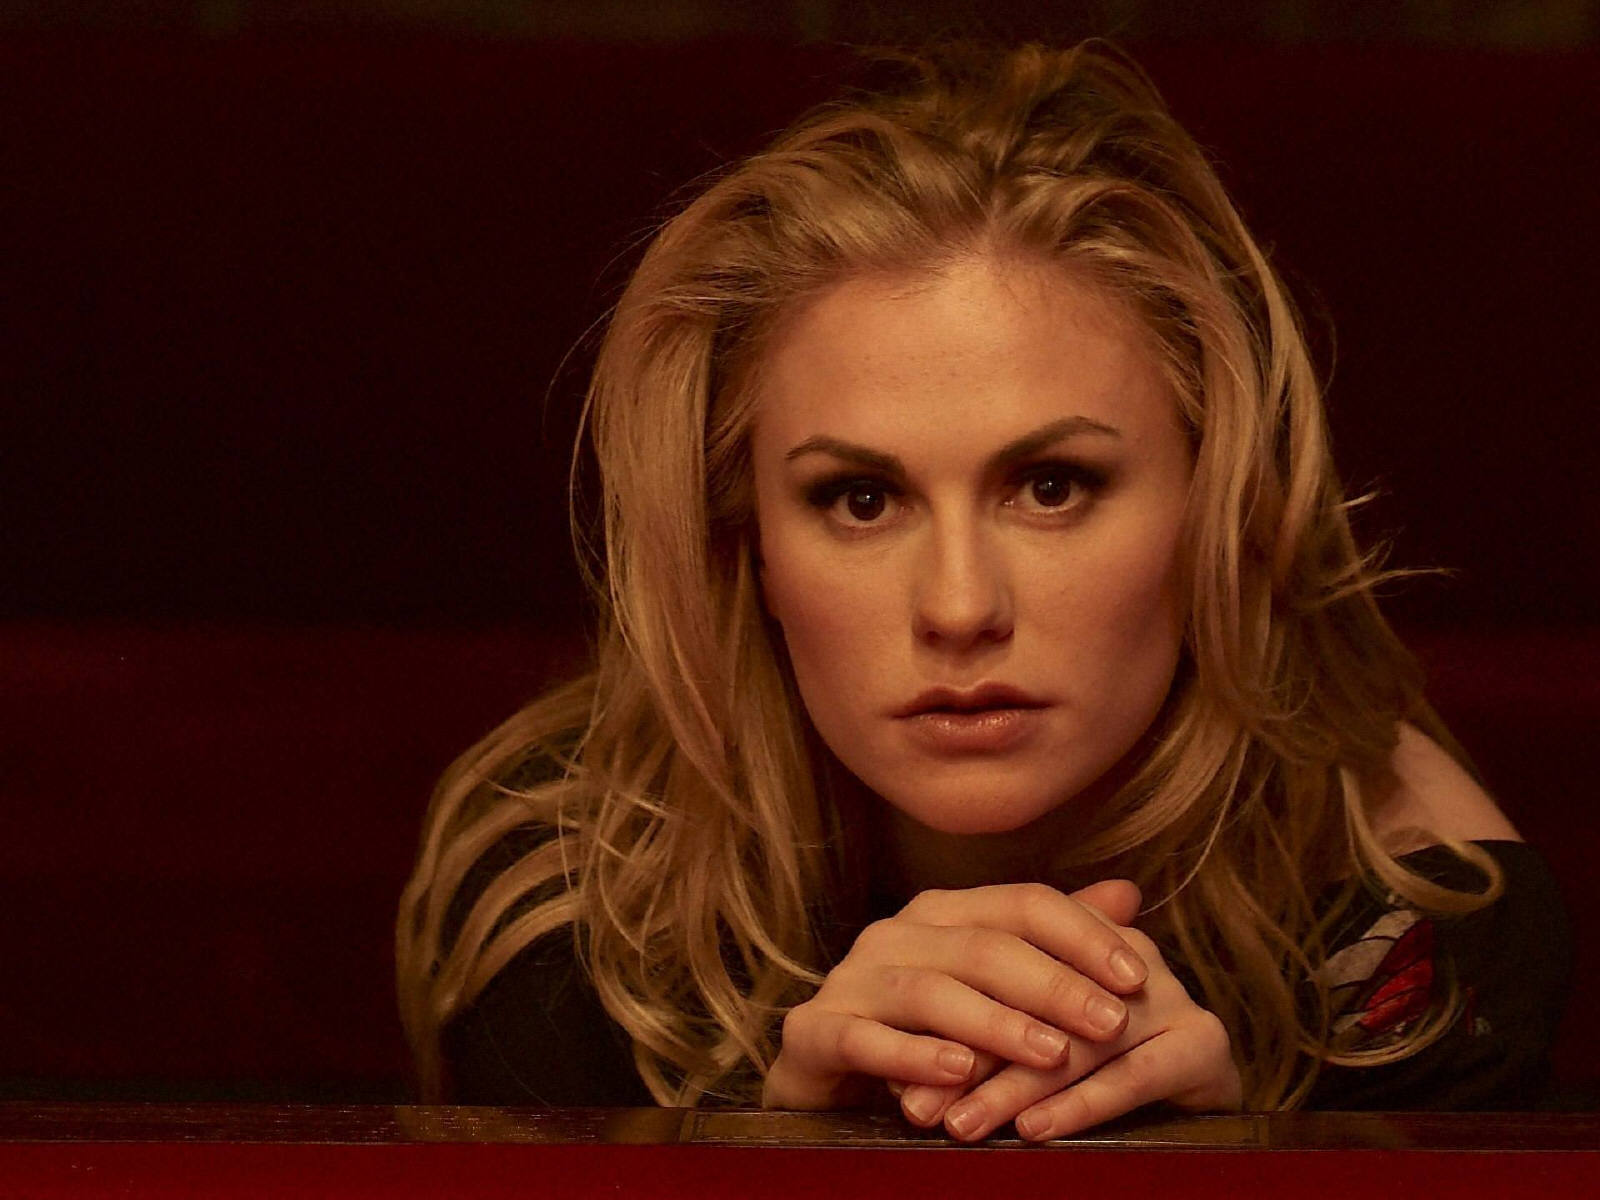 1600x1200 - Anna Paquin Wallpapers 16